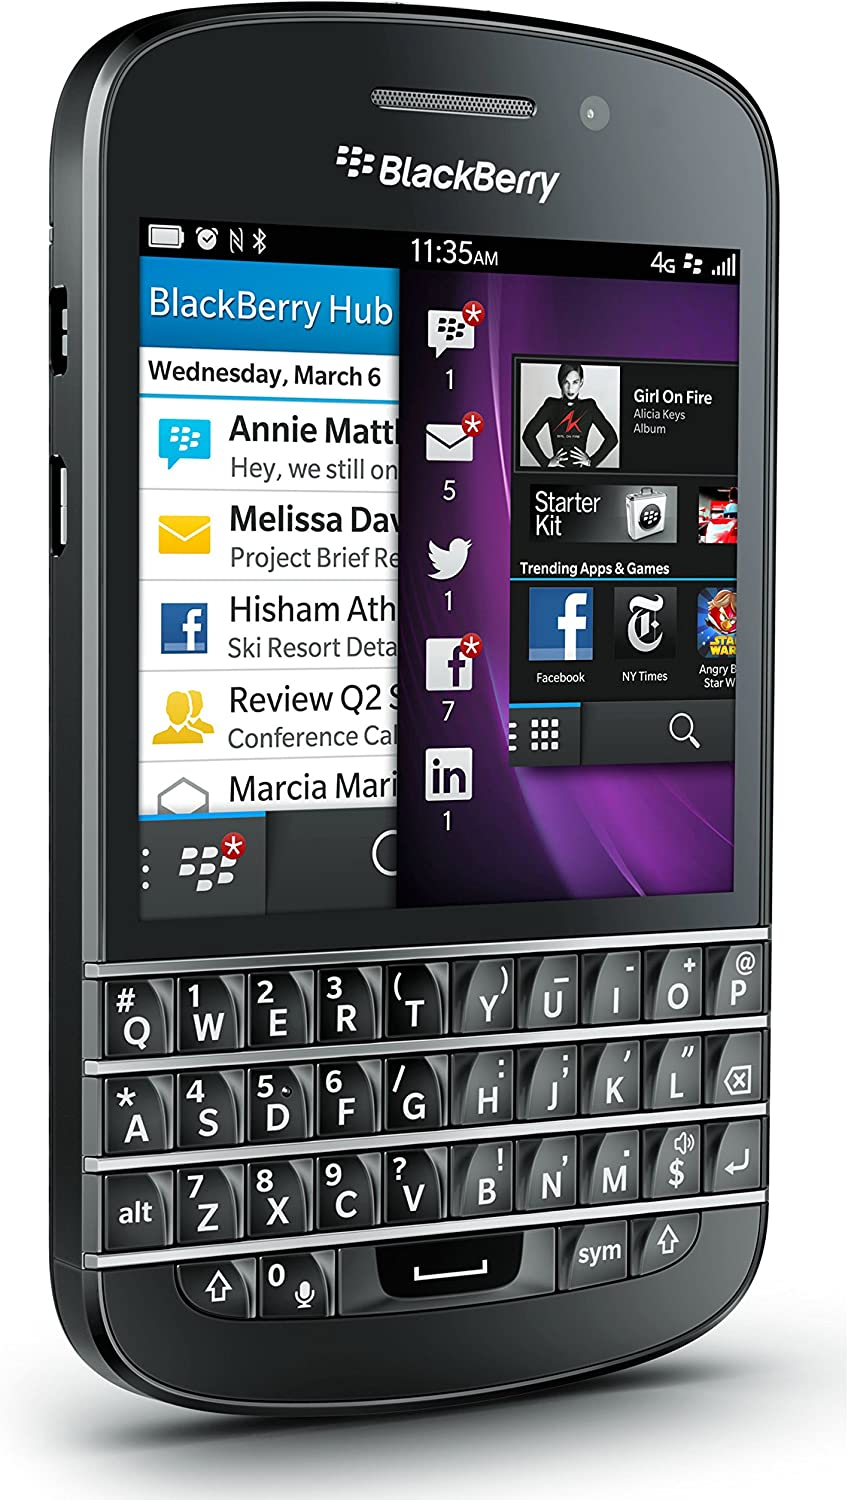 Amazon.com: Blackberry Q10 - Desbloqueado: Cellular_Superstore